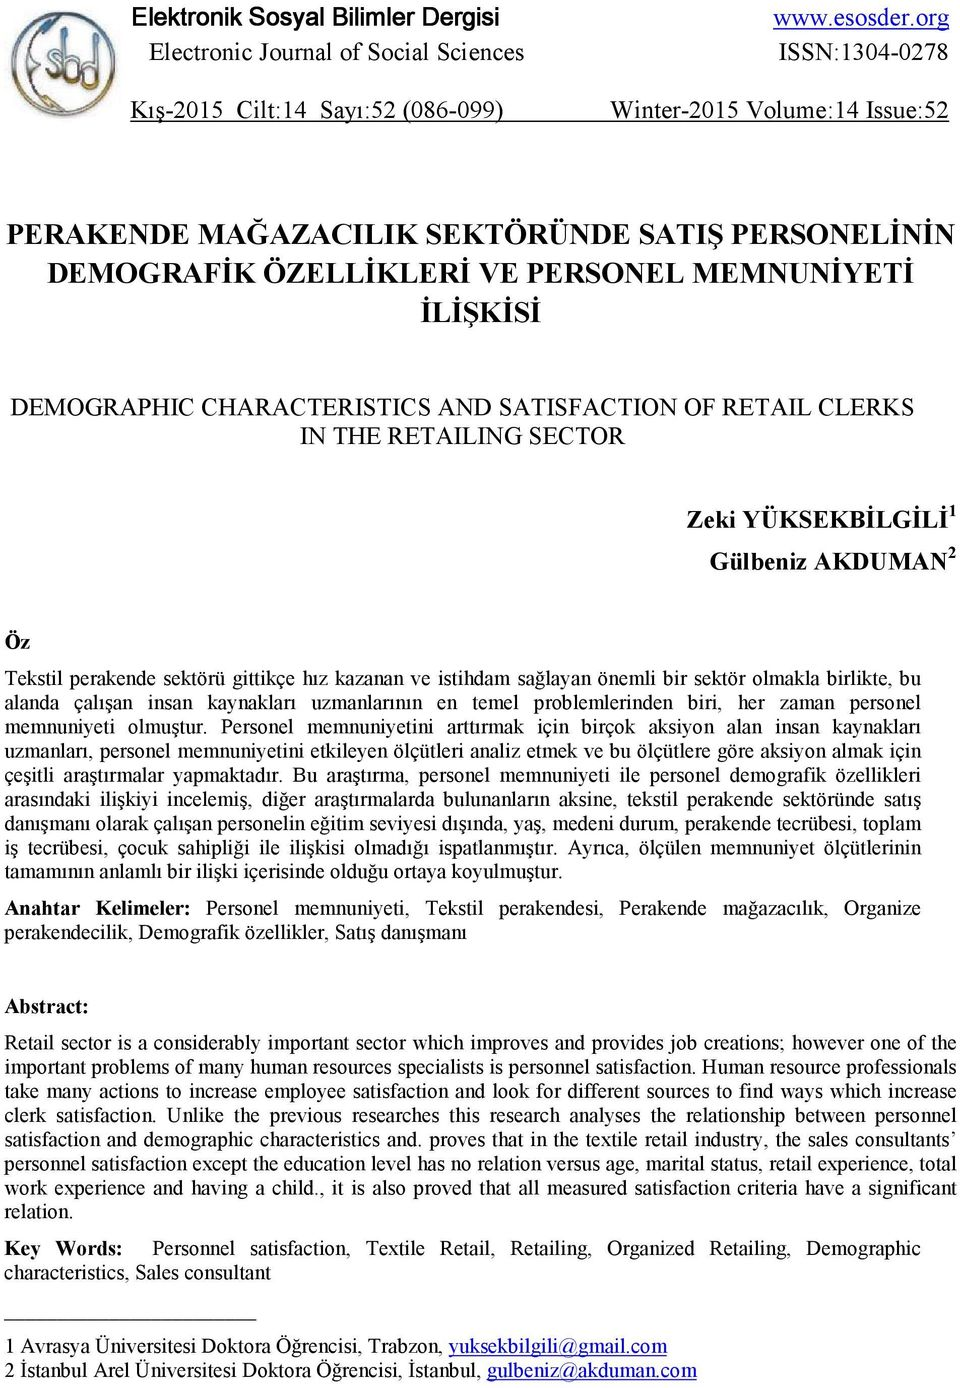 SATISFACTION OF RETAIL CLERKS IN THE RETAILING SECTOR Zeki YÜKSEKBĐLGĐLĐ 1 Gülbeniz AKDUMAN 2 Öz Tekstil perakende sektörü gittikçe hız kazanan ve istihdam sağlayan önemli bir sektör olmakla